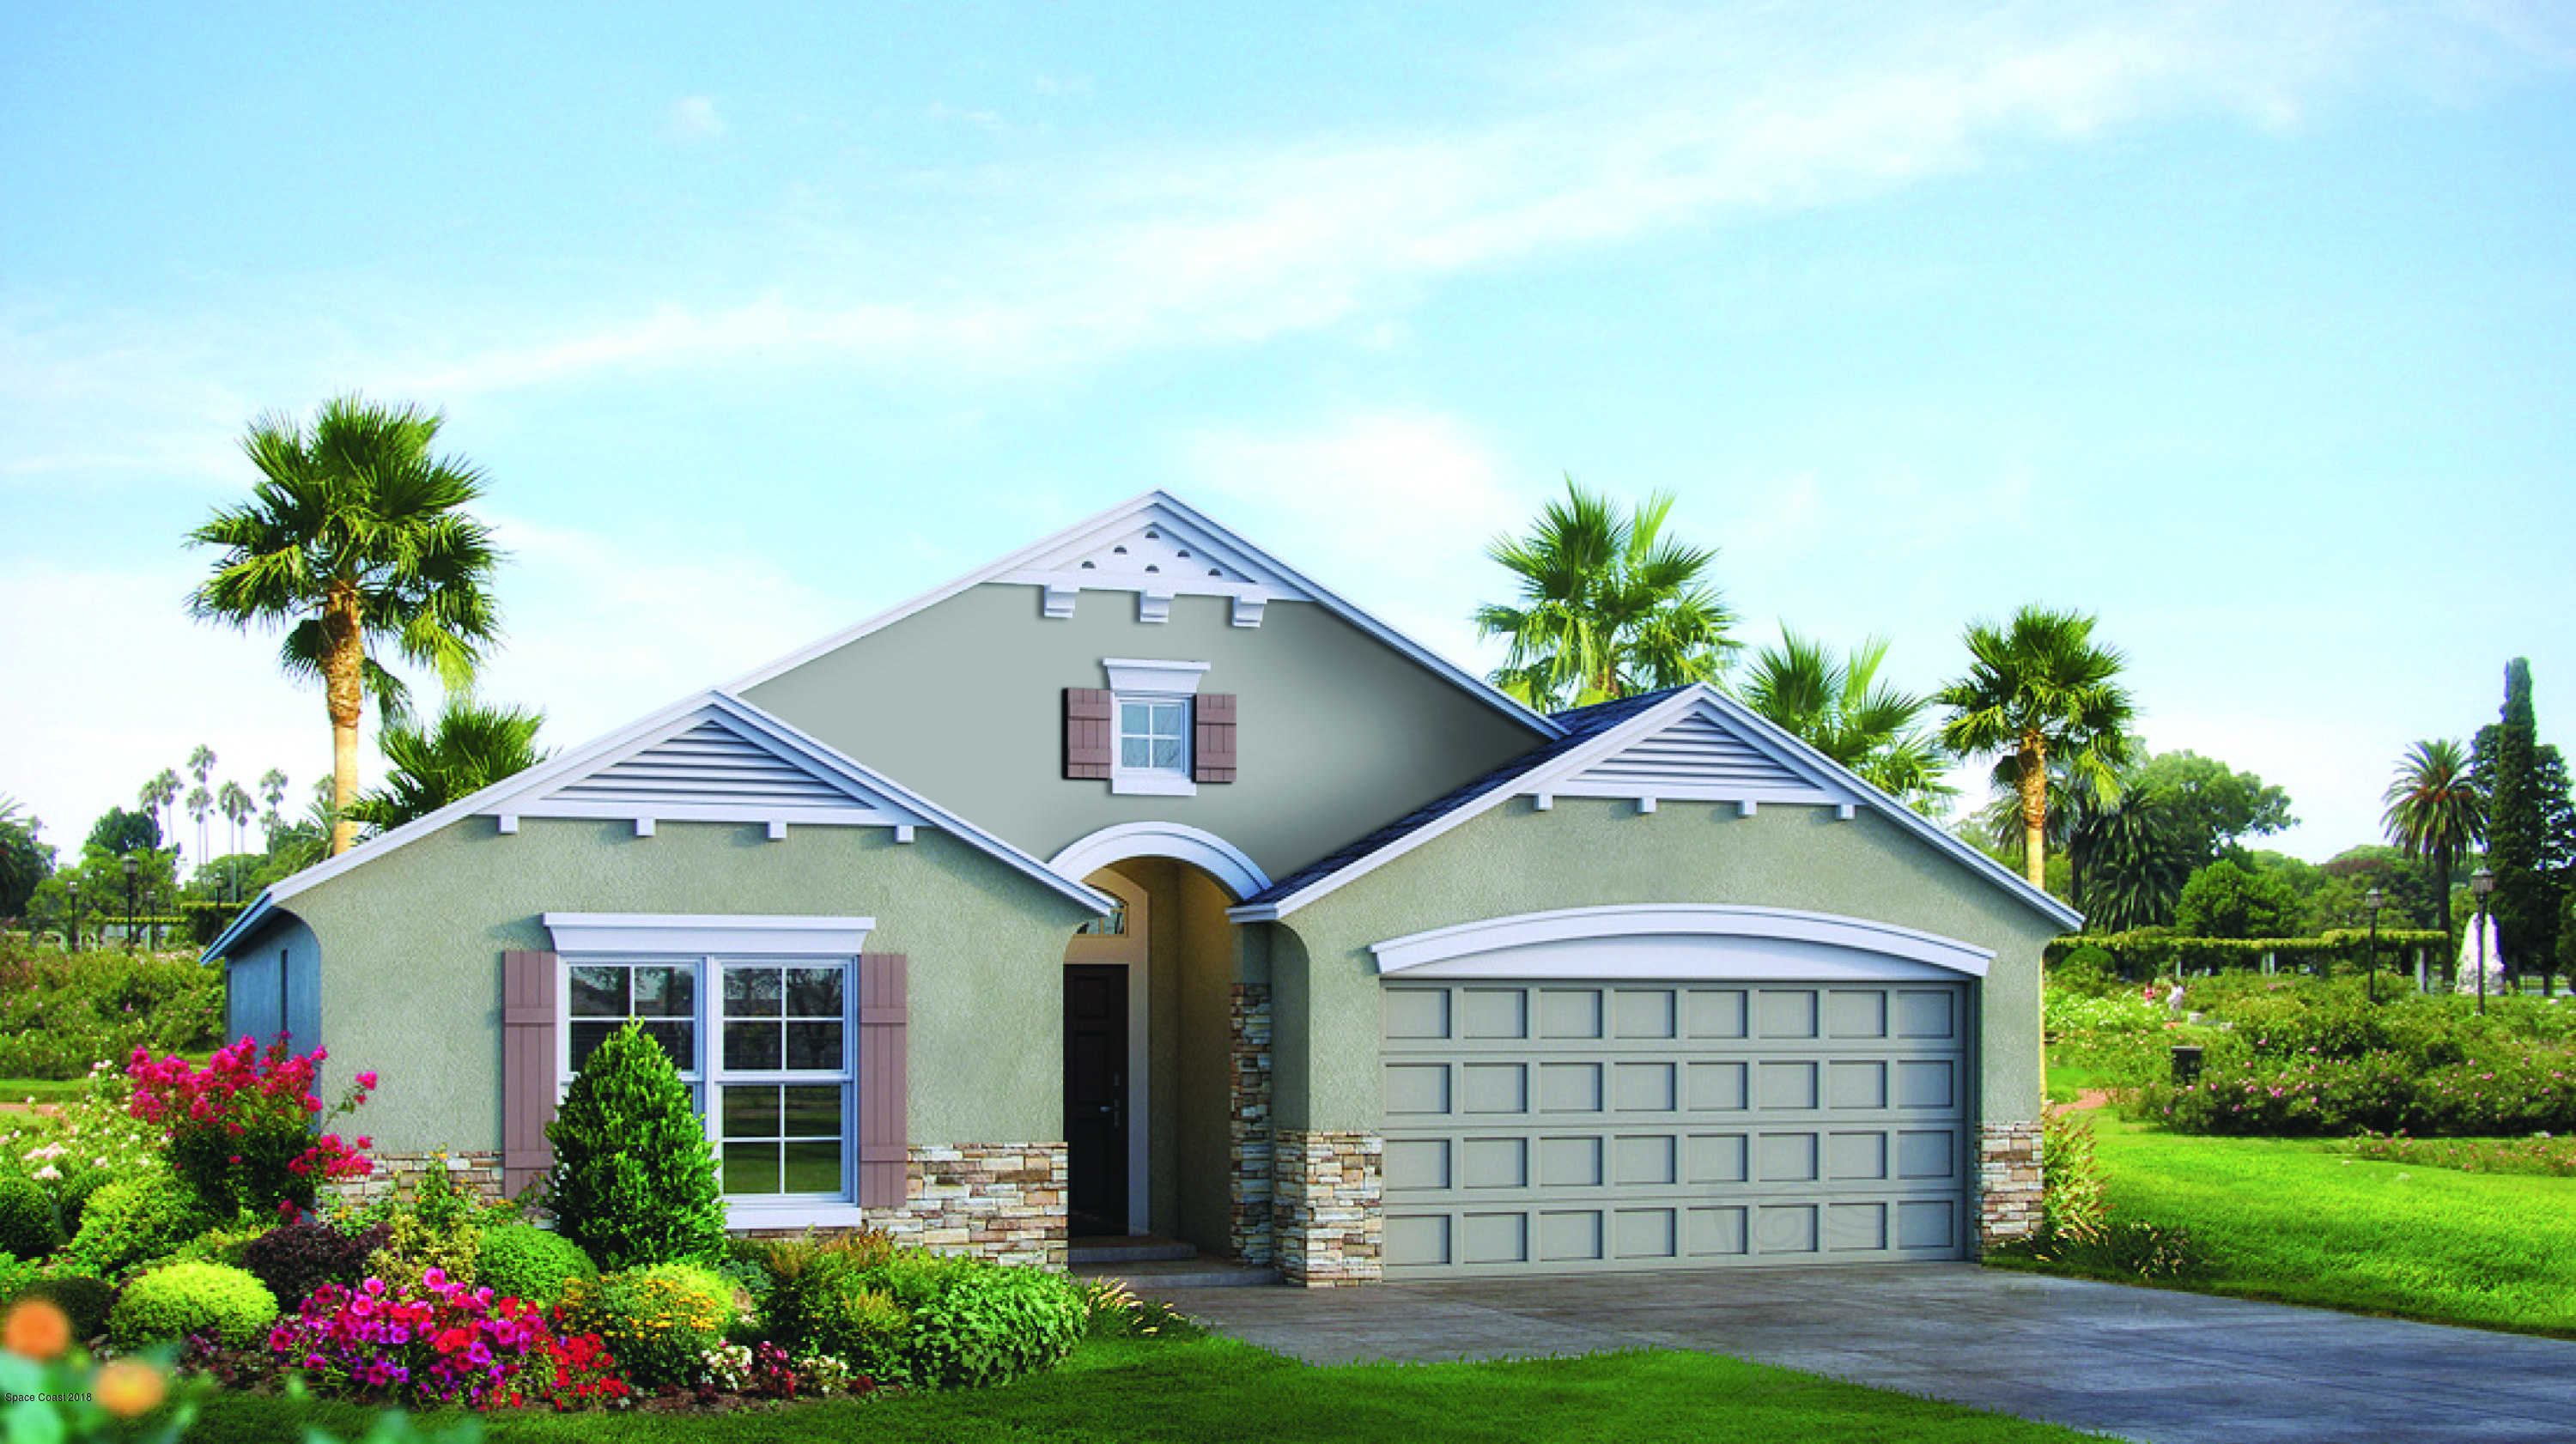 4118-Trovita-West-Melbourne-FL-32904